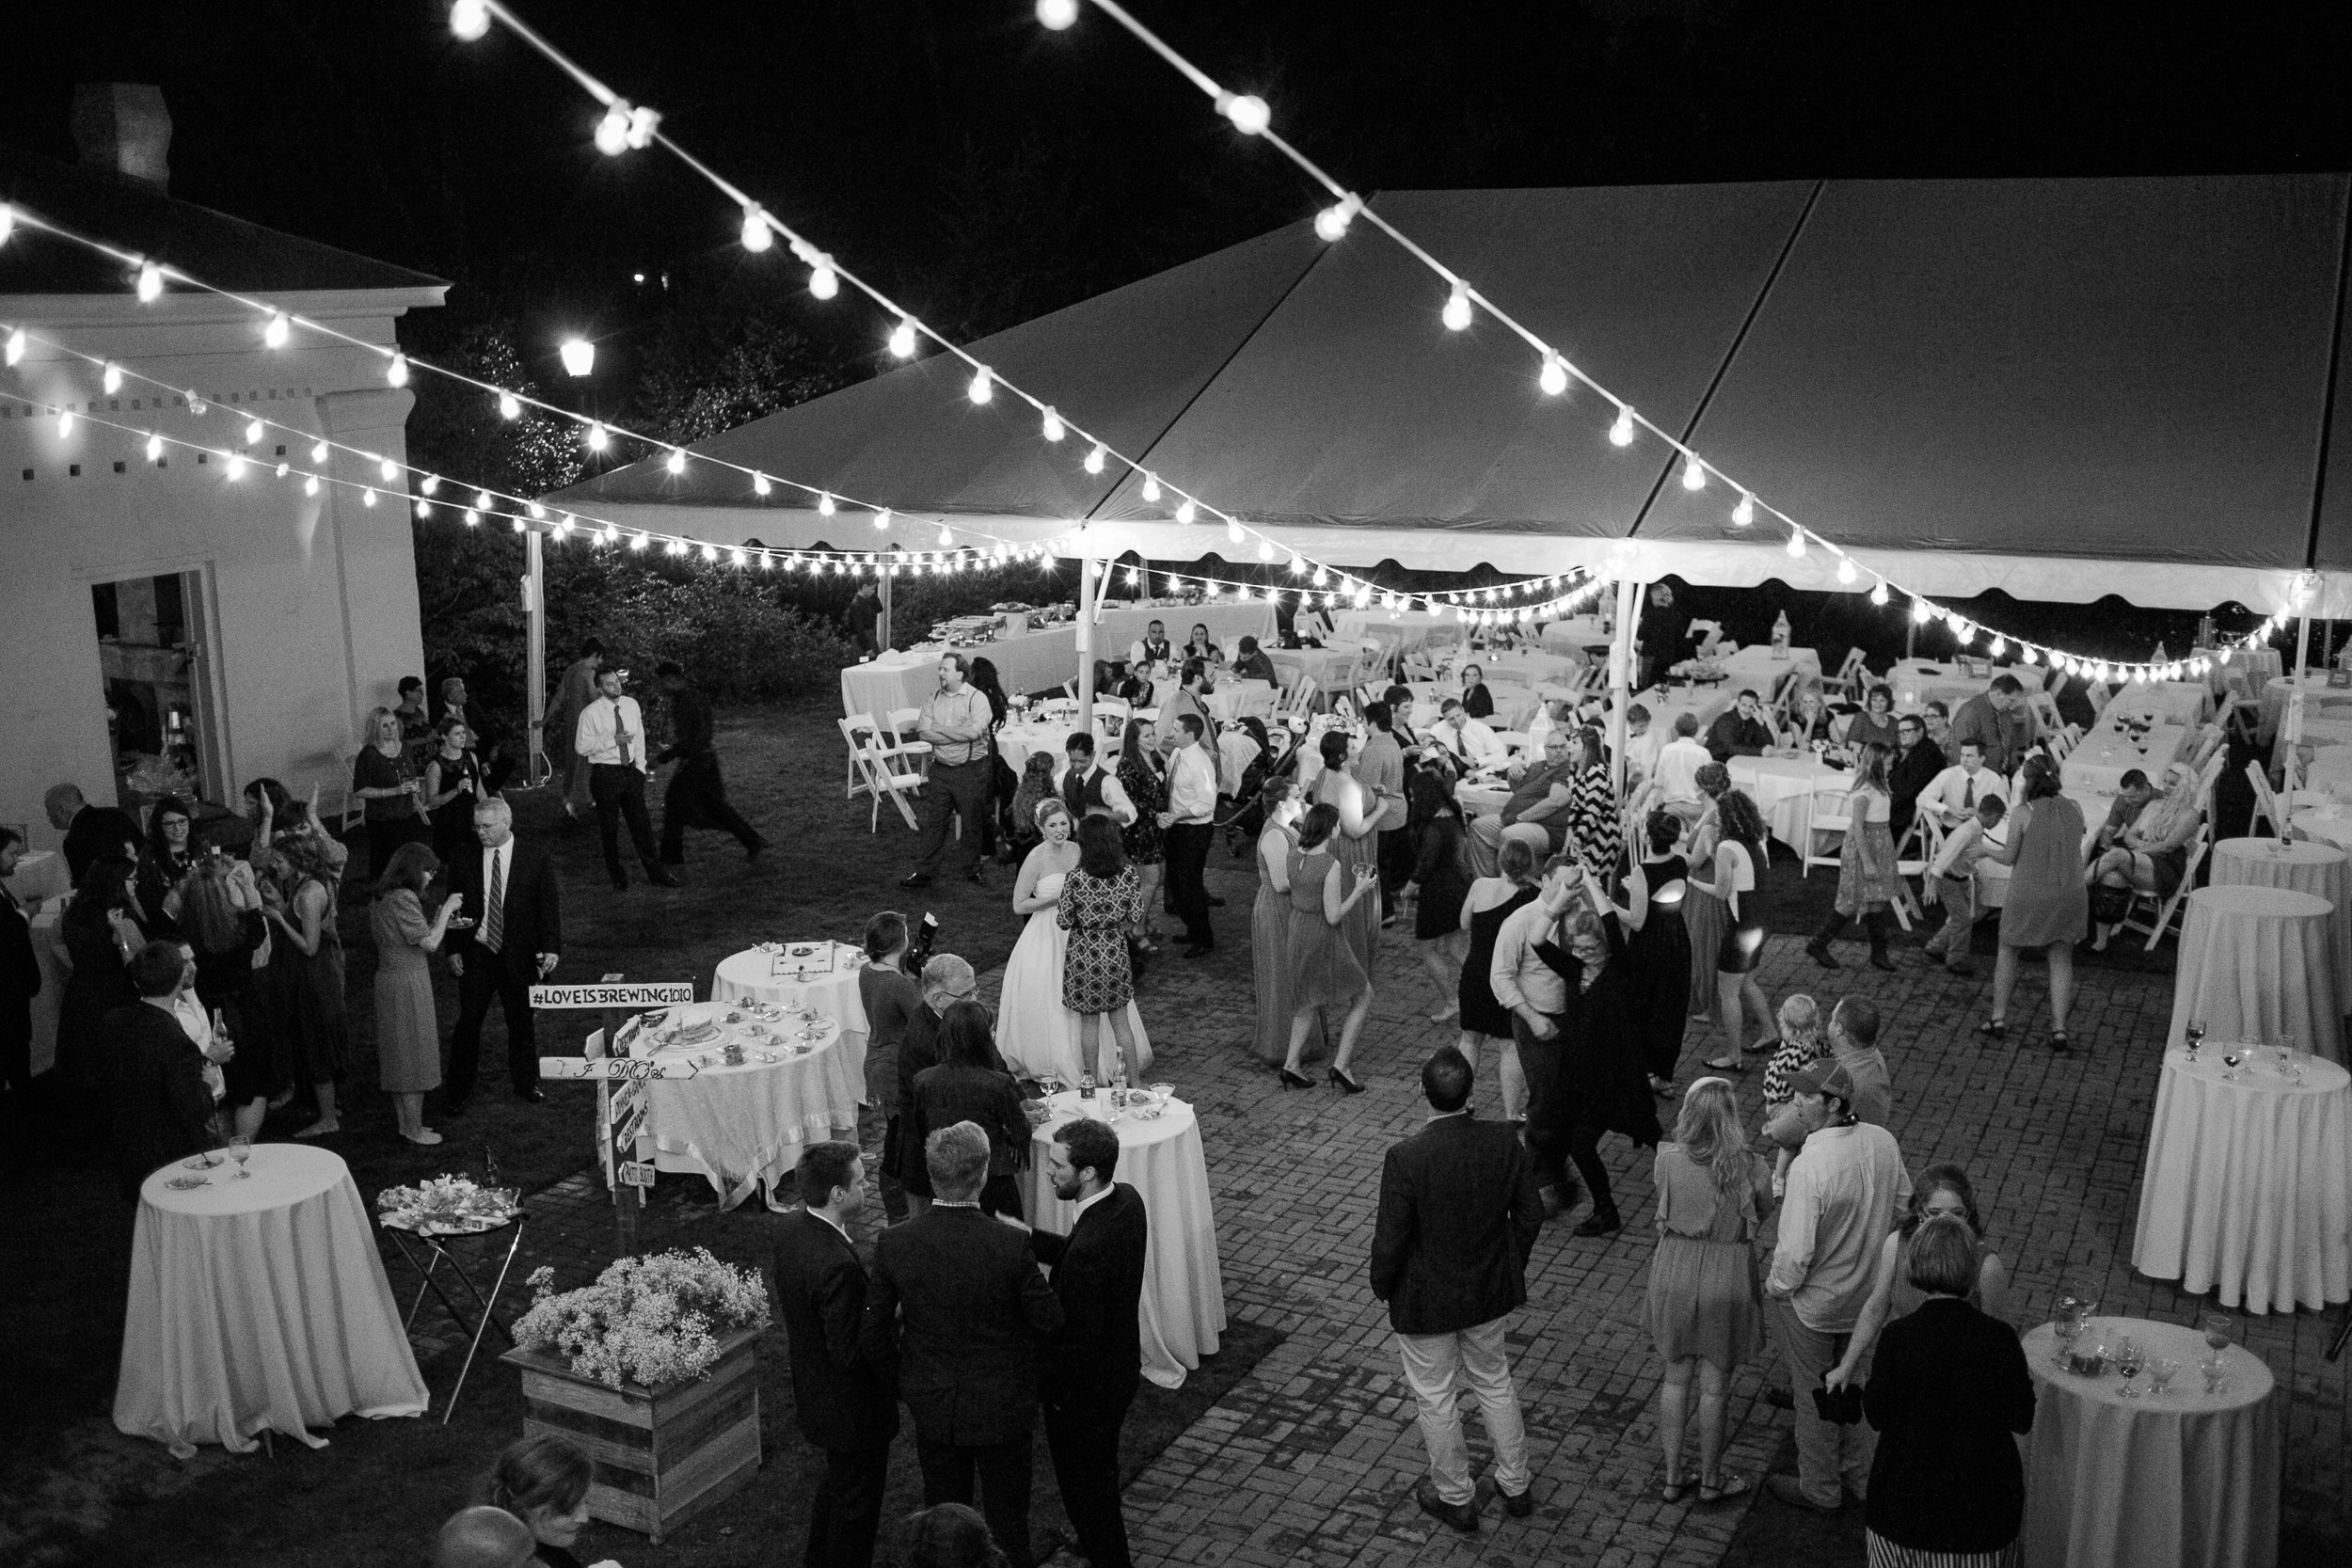 Our backyard is the perfect place for your reception. Anna and Will rented a 40x60 tent and lighting from Goodwin Rentals for their 225 person event.